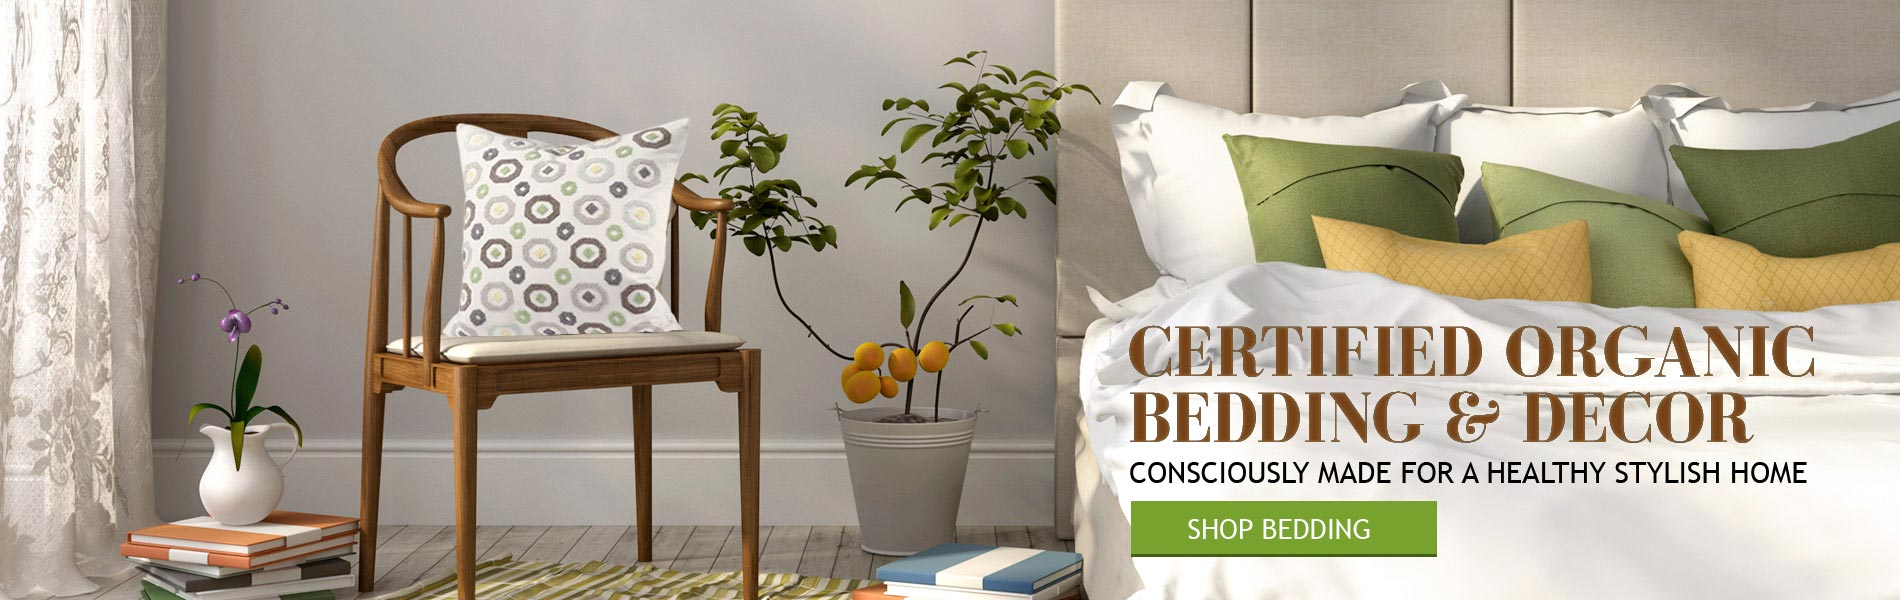 Certified Organic Bedding and Eco-Friendly Home Decor Products